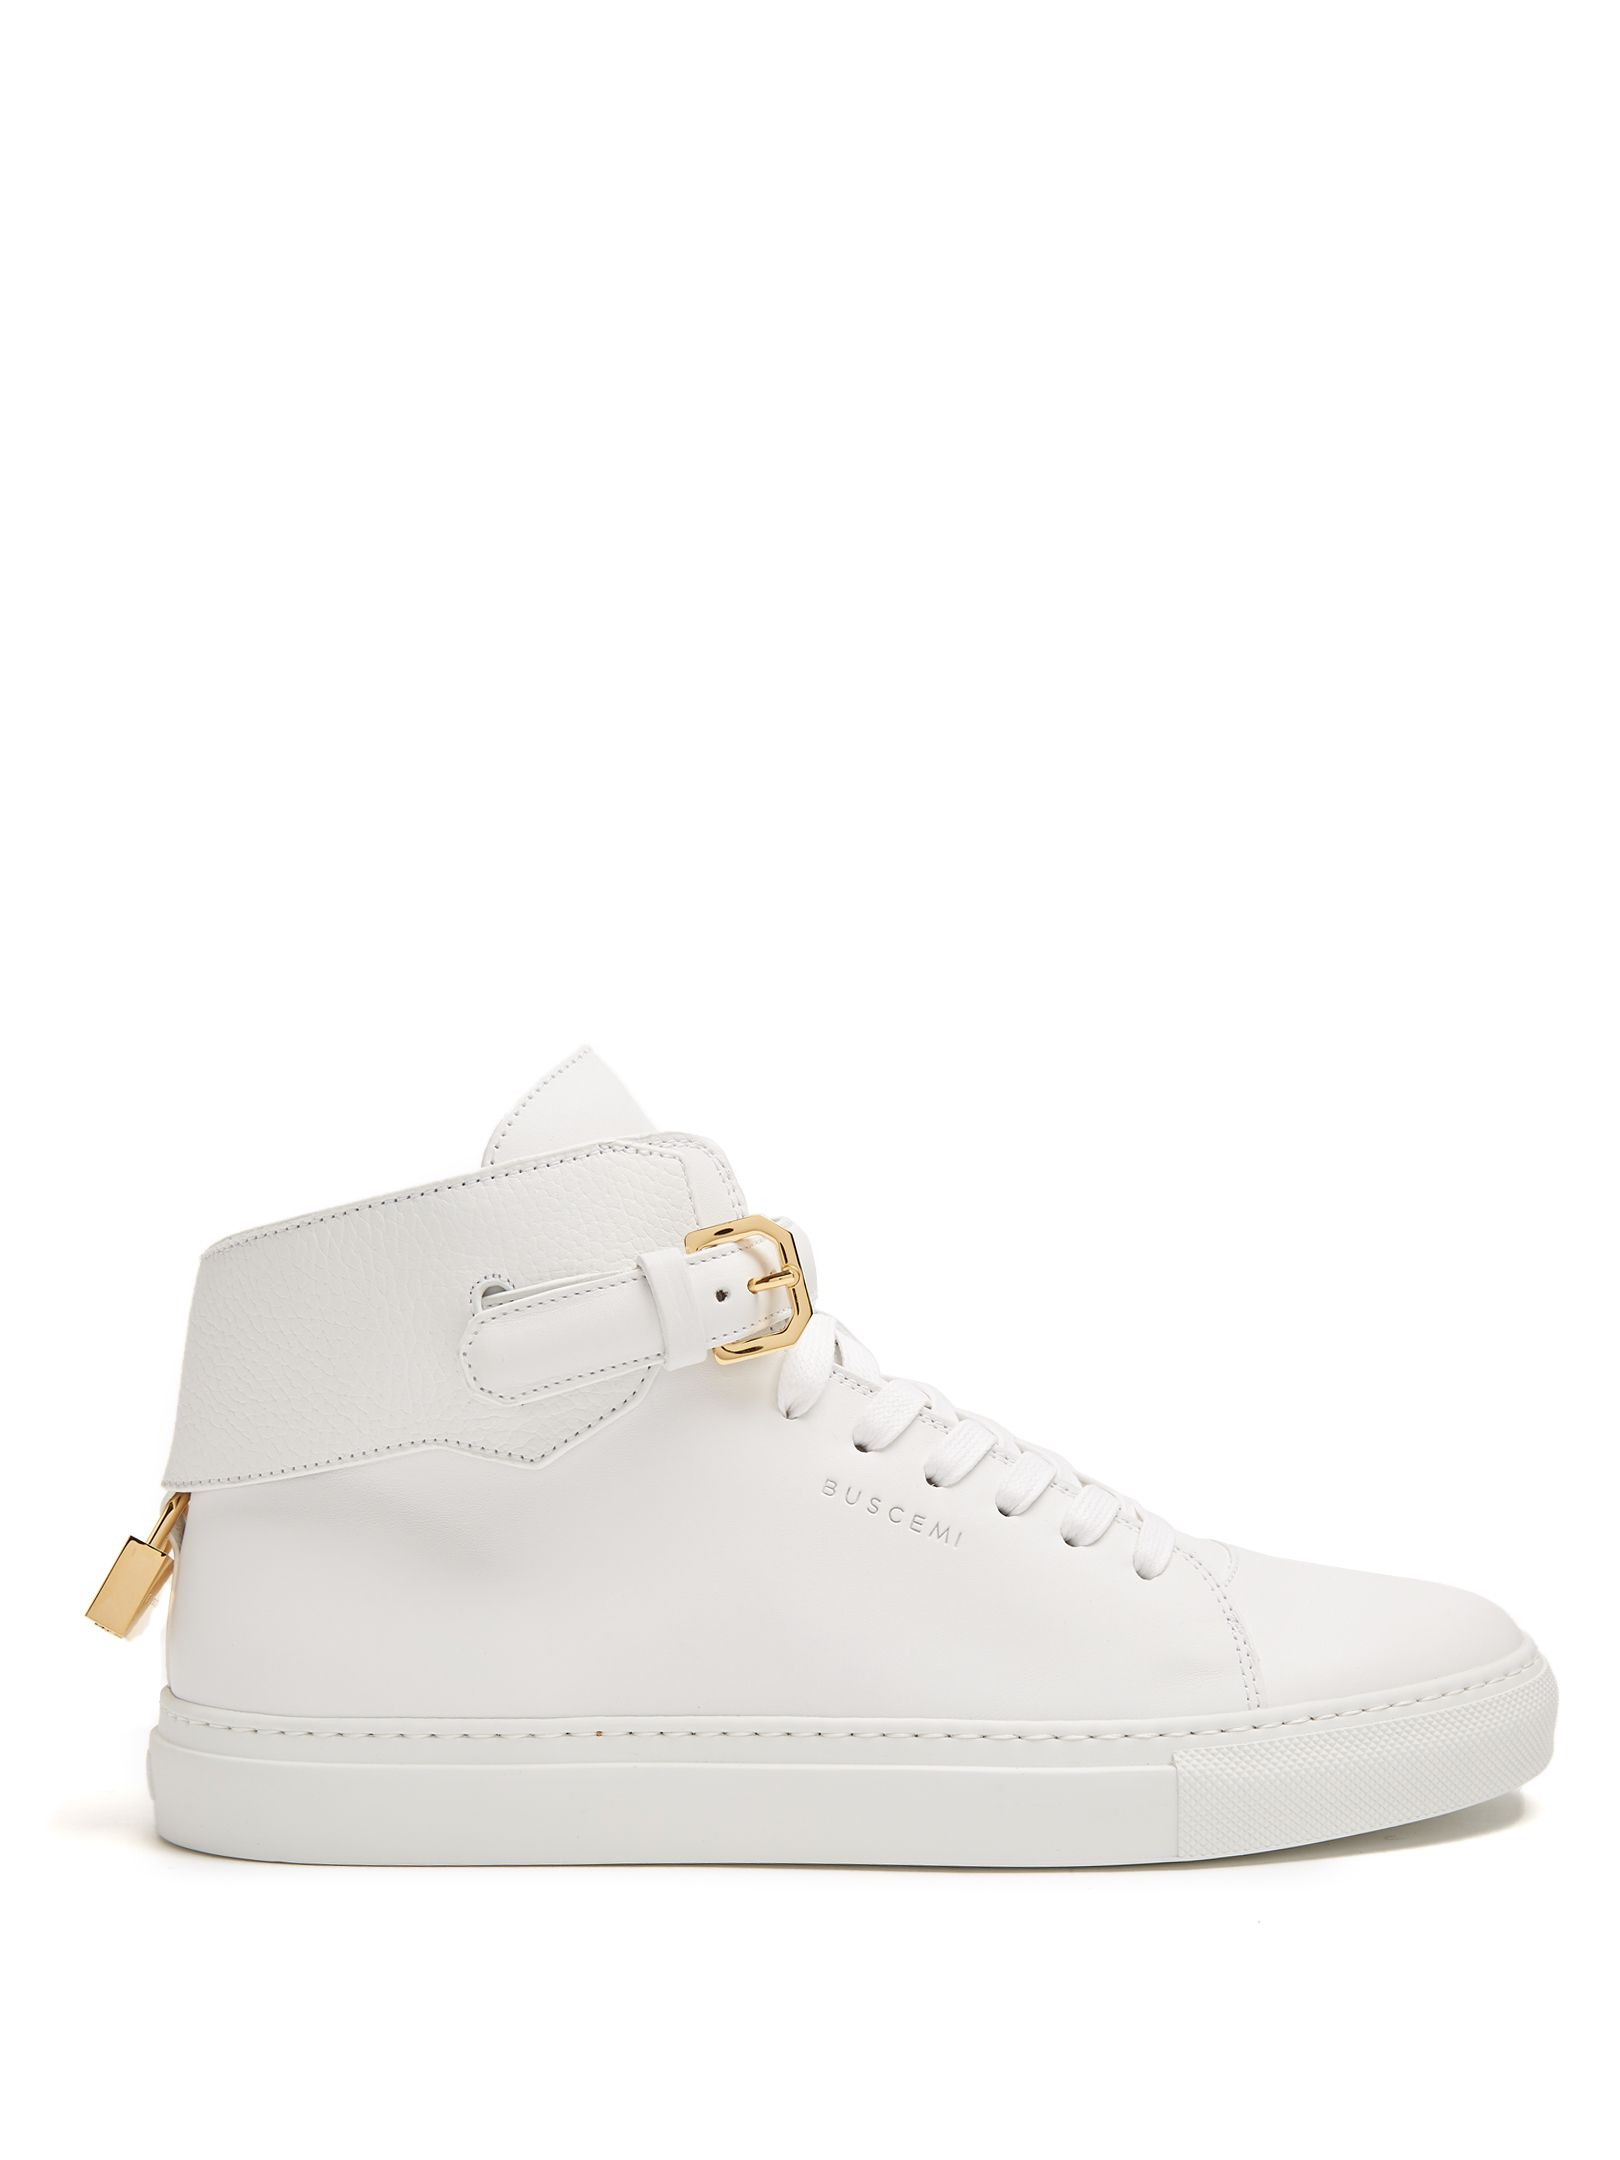 100mm Buckle suede high-top trainers Buscemi FEnv6Nz8mX